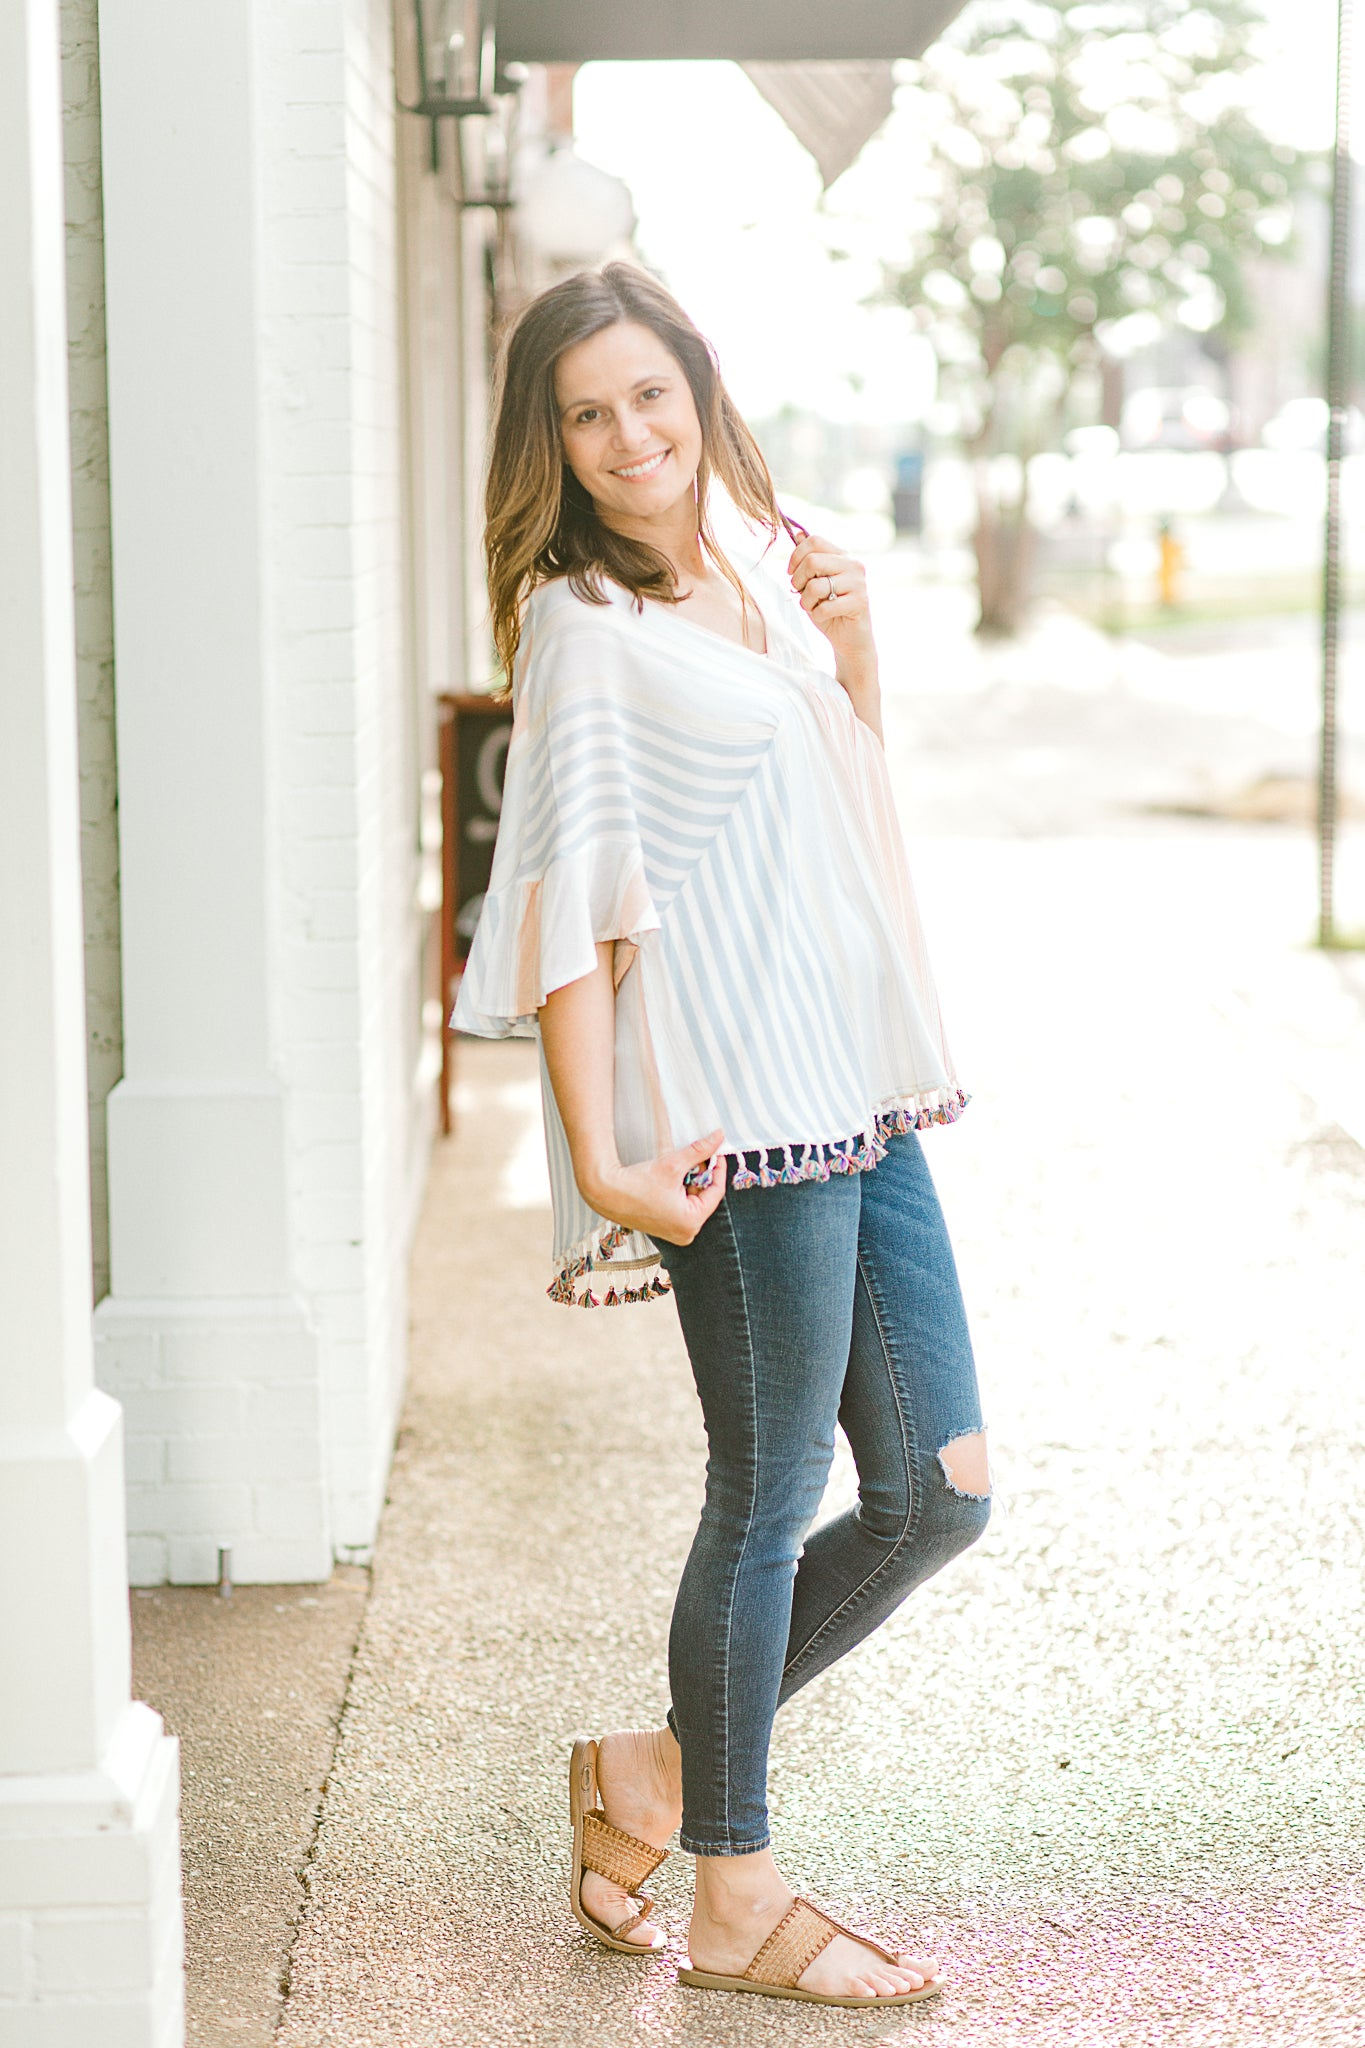 Sunset Tassel Top for the Bump